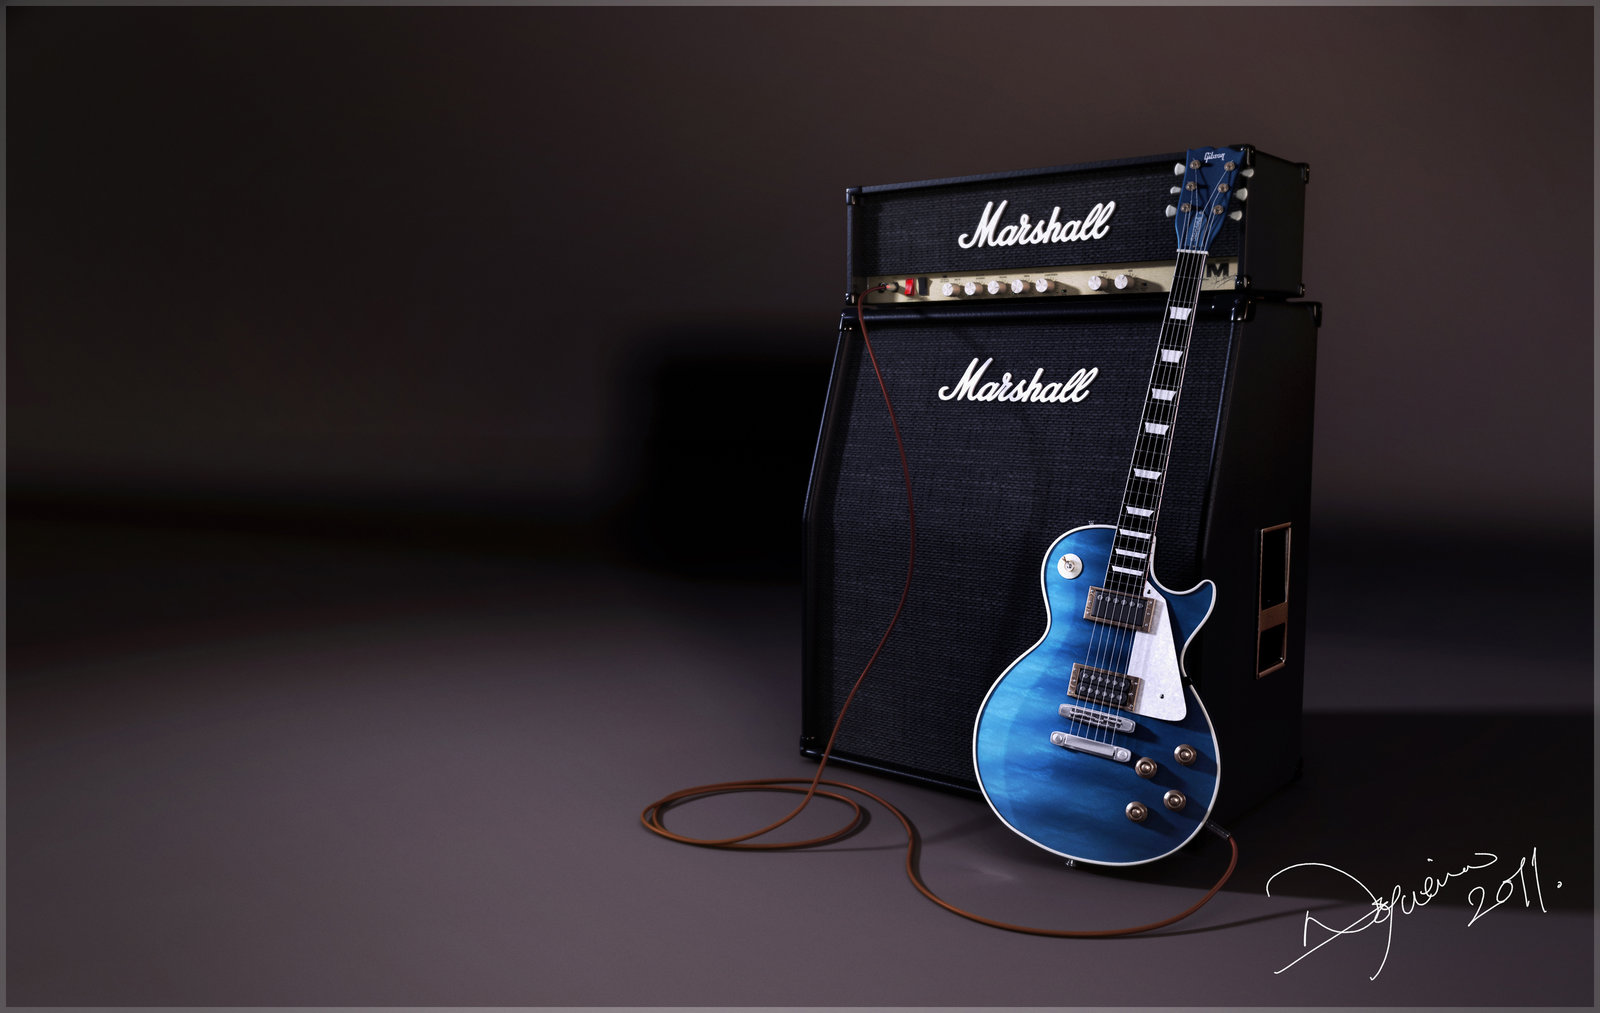 Gibson Guitar Wallpaper HD - WallpaperSafari